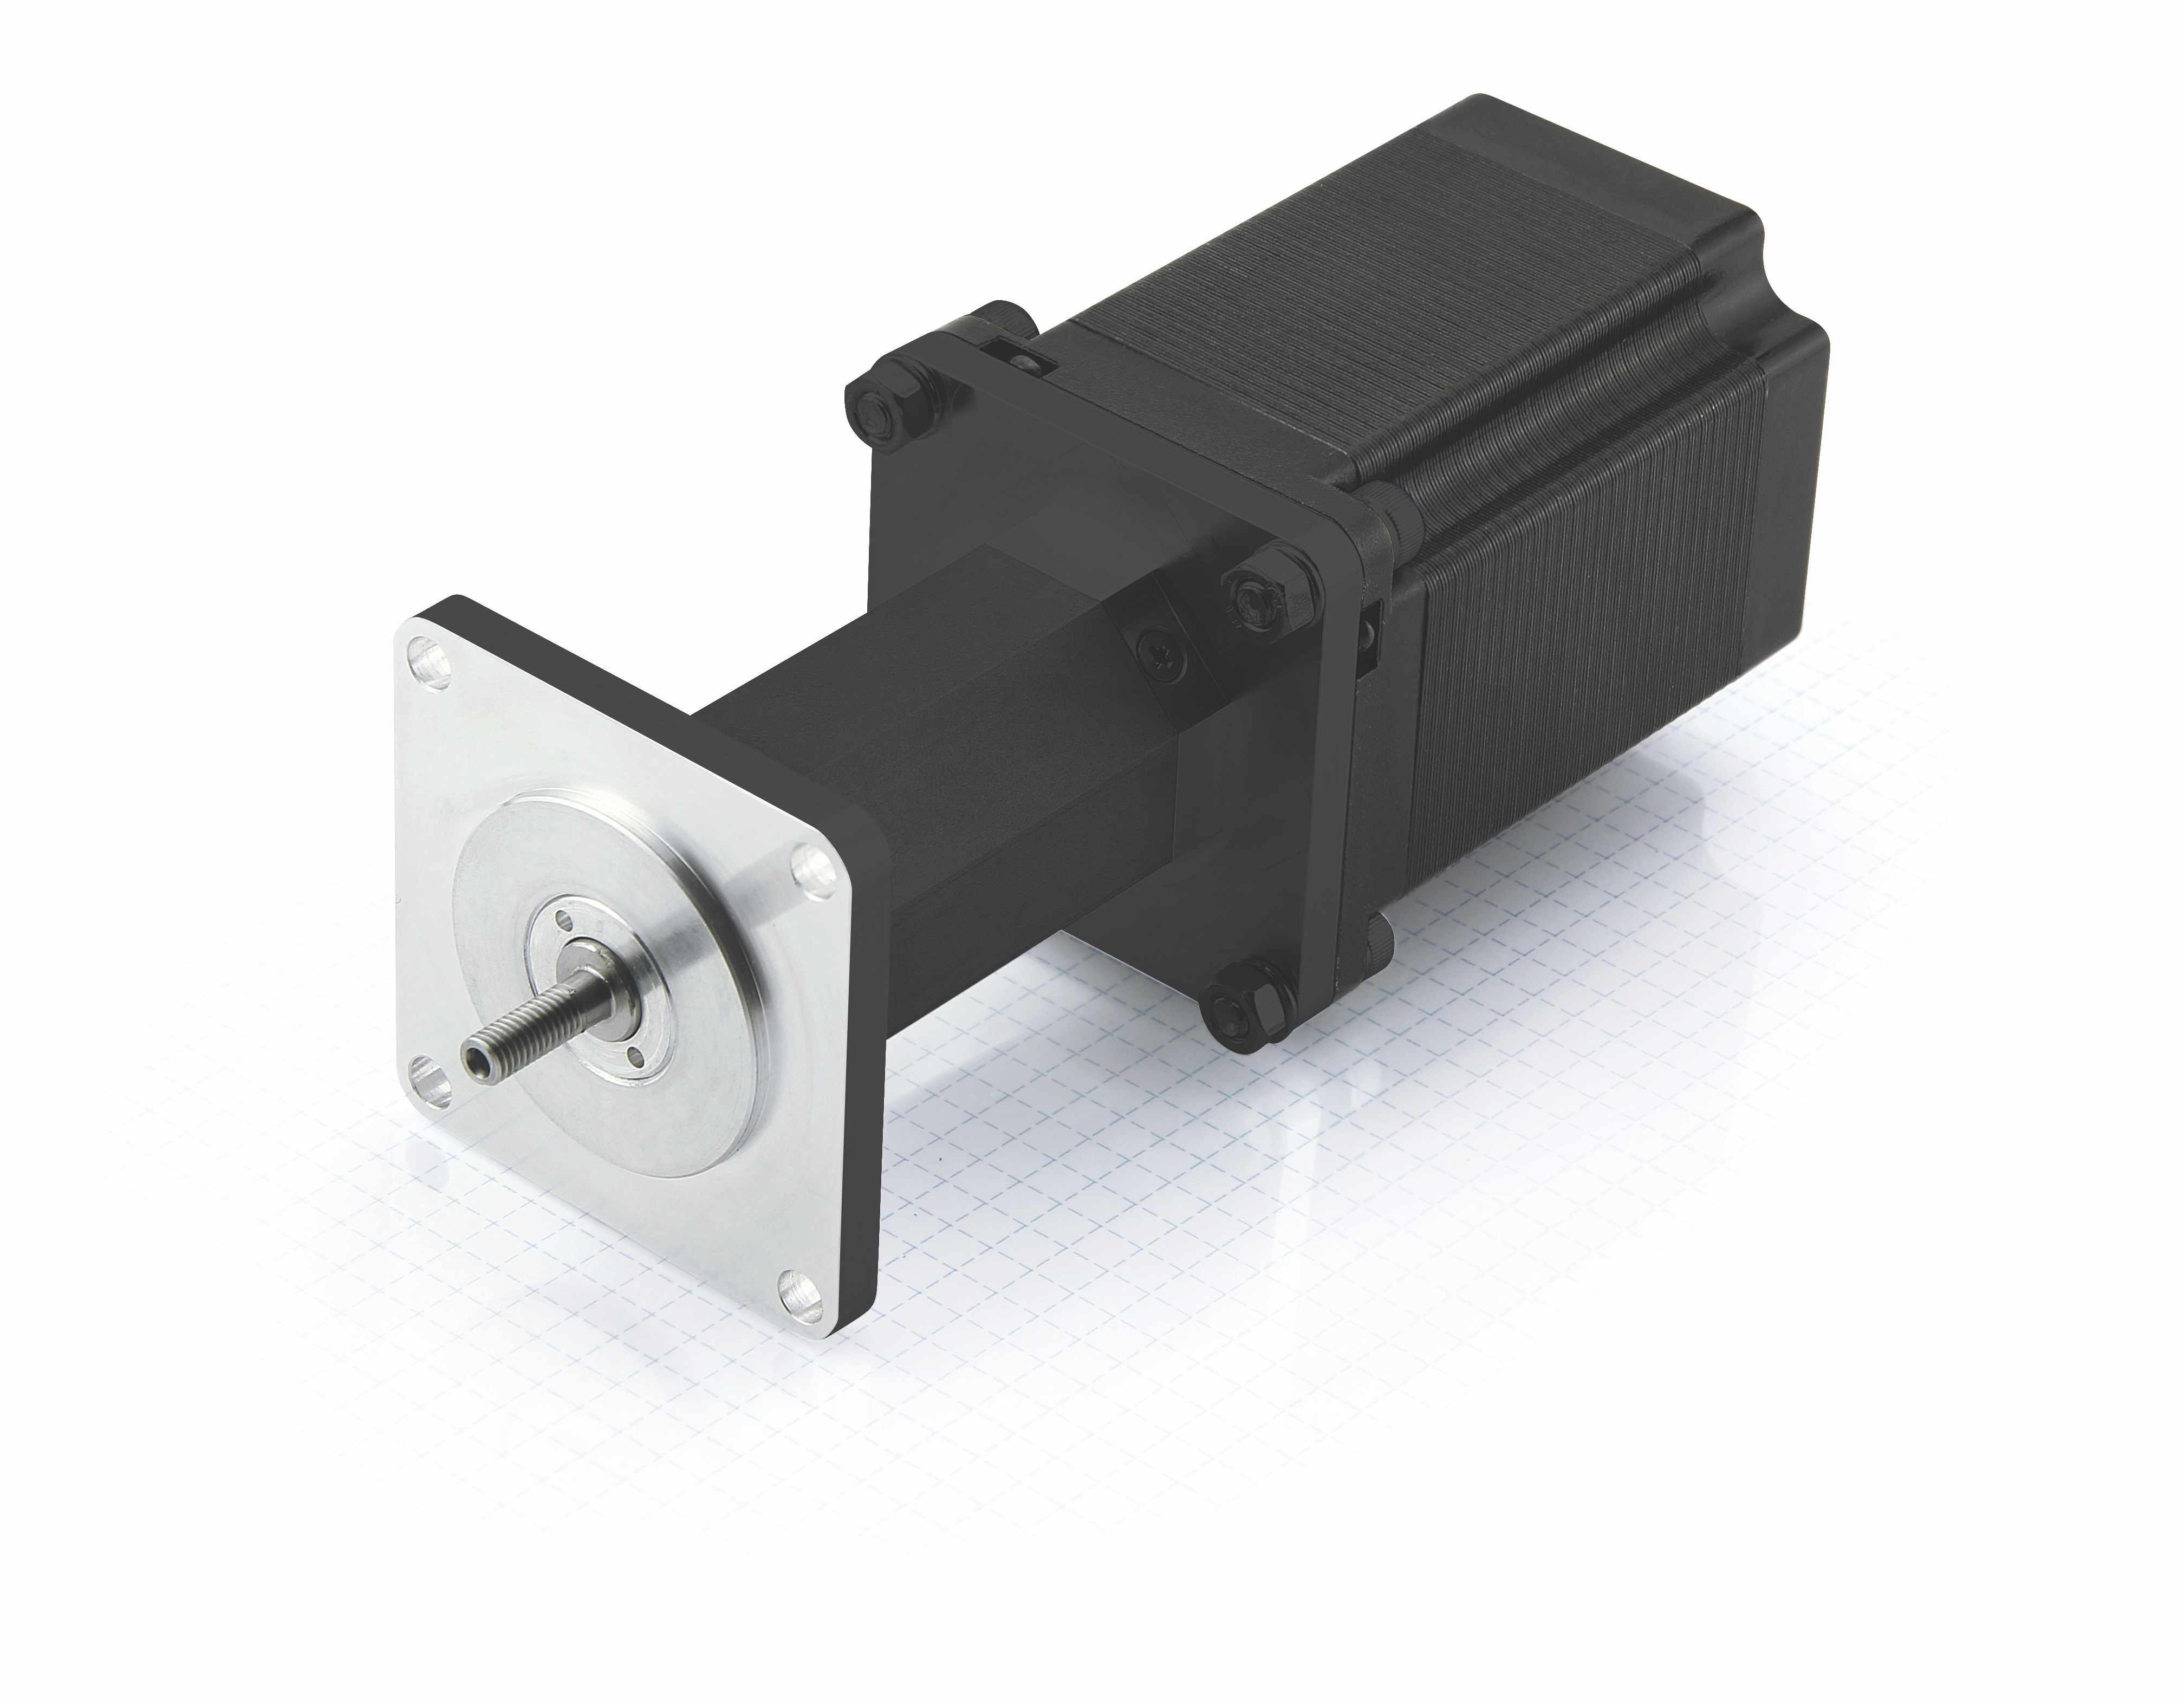 L59-A - Linear Actuators with Lead Screw and Linear Slide